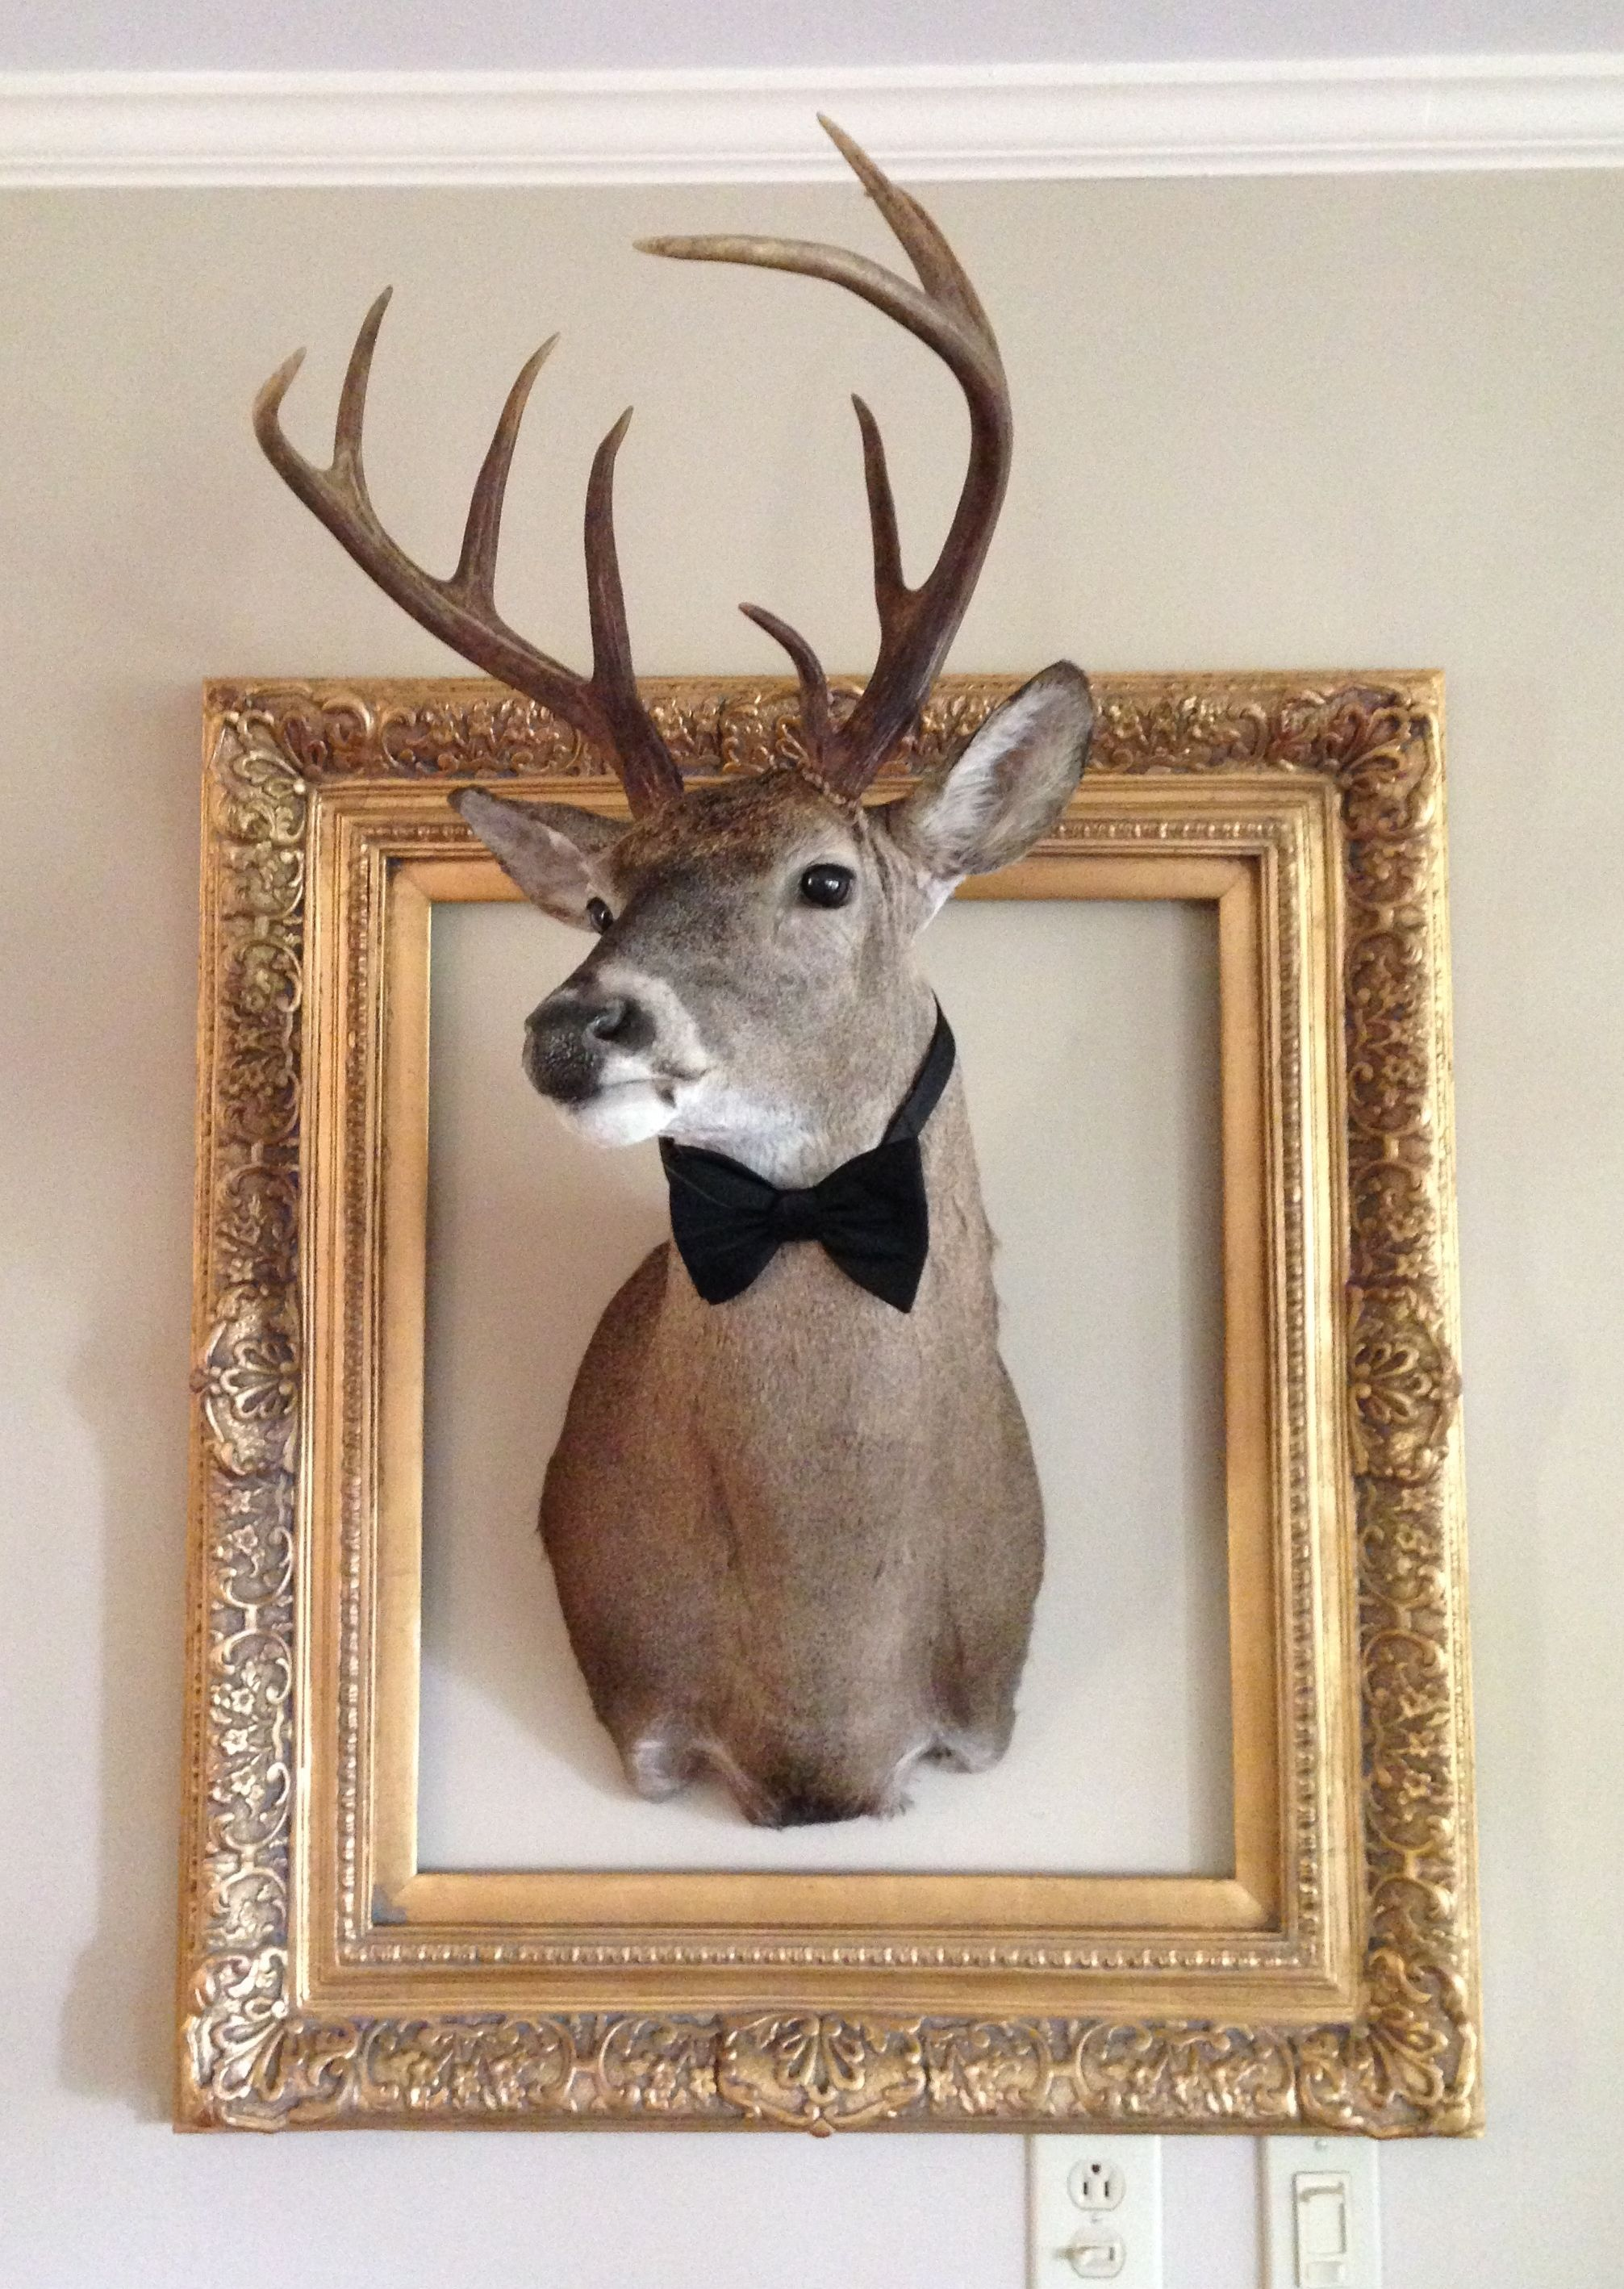 Frame The Deer Head With Gold And Bow Tie